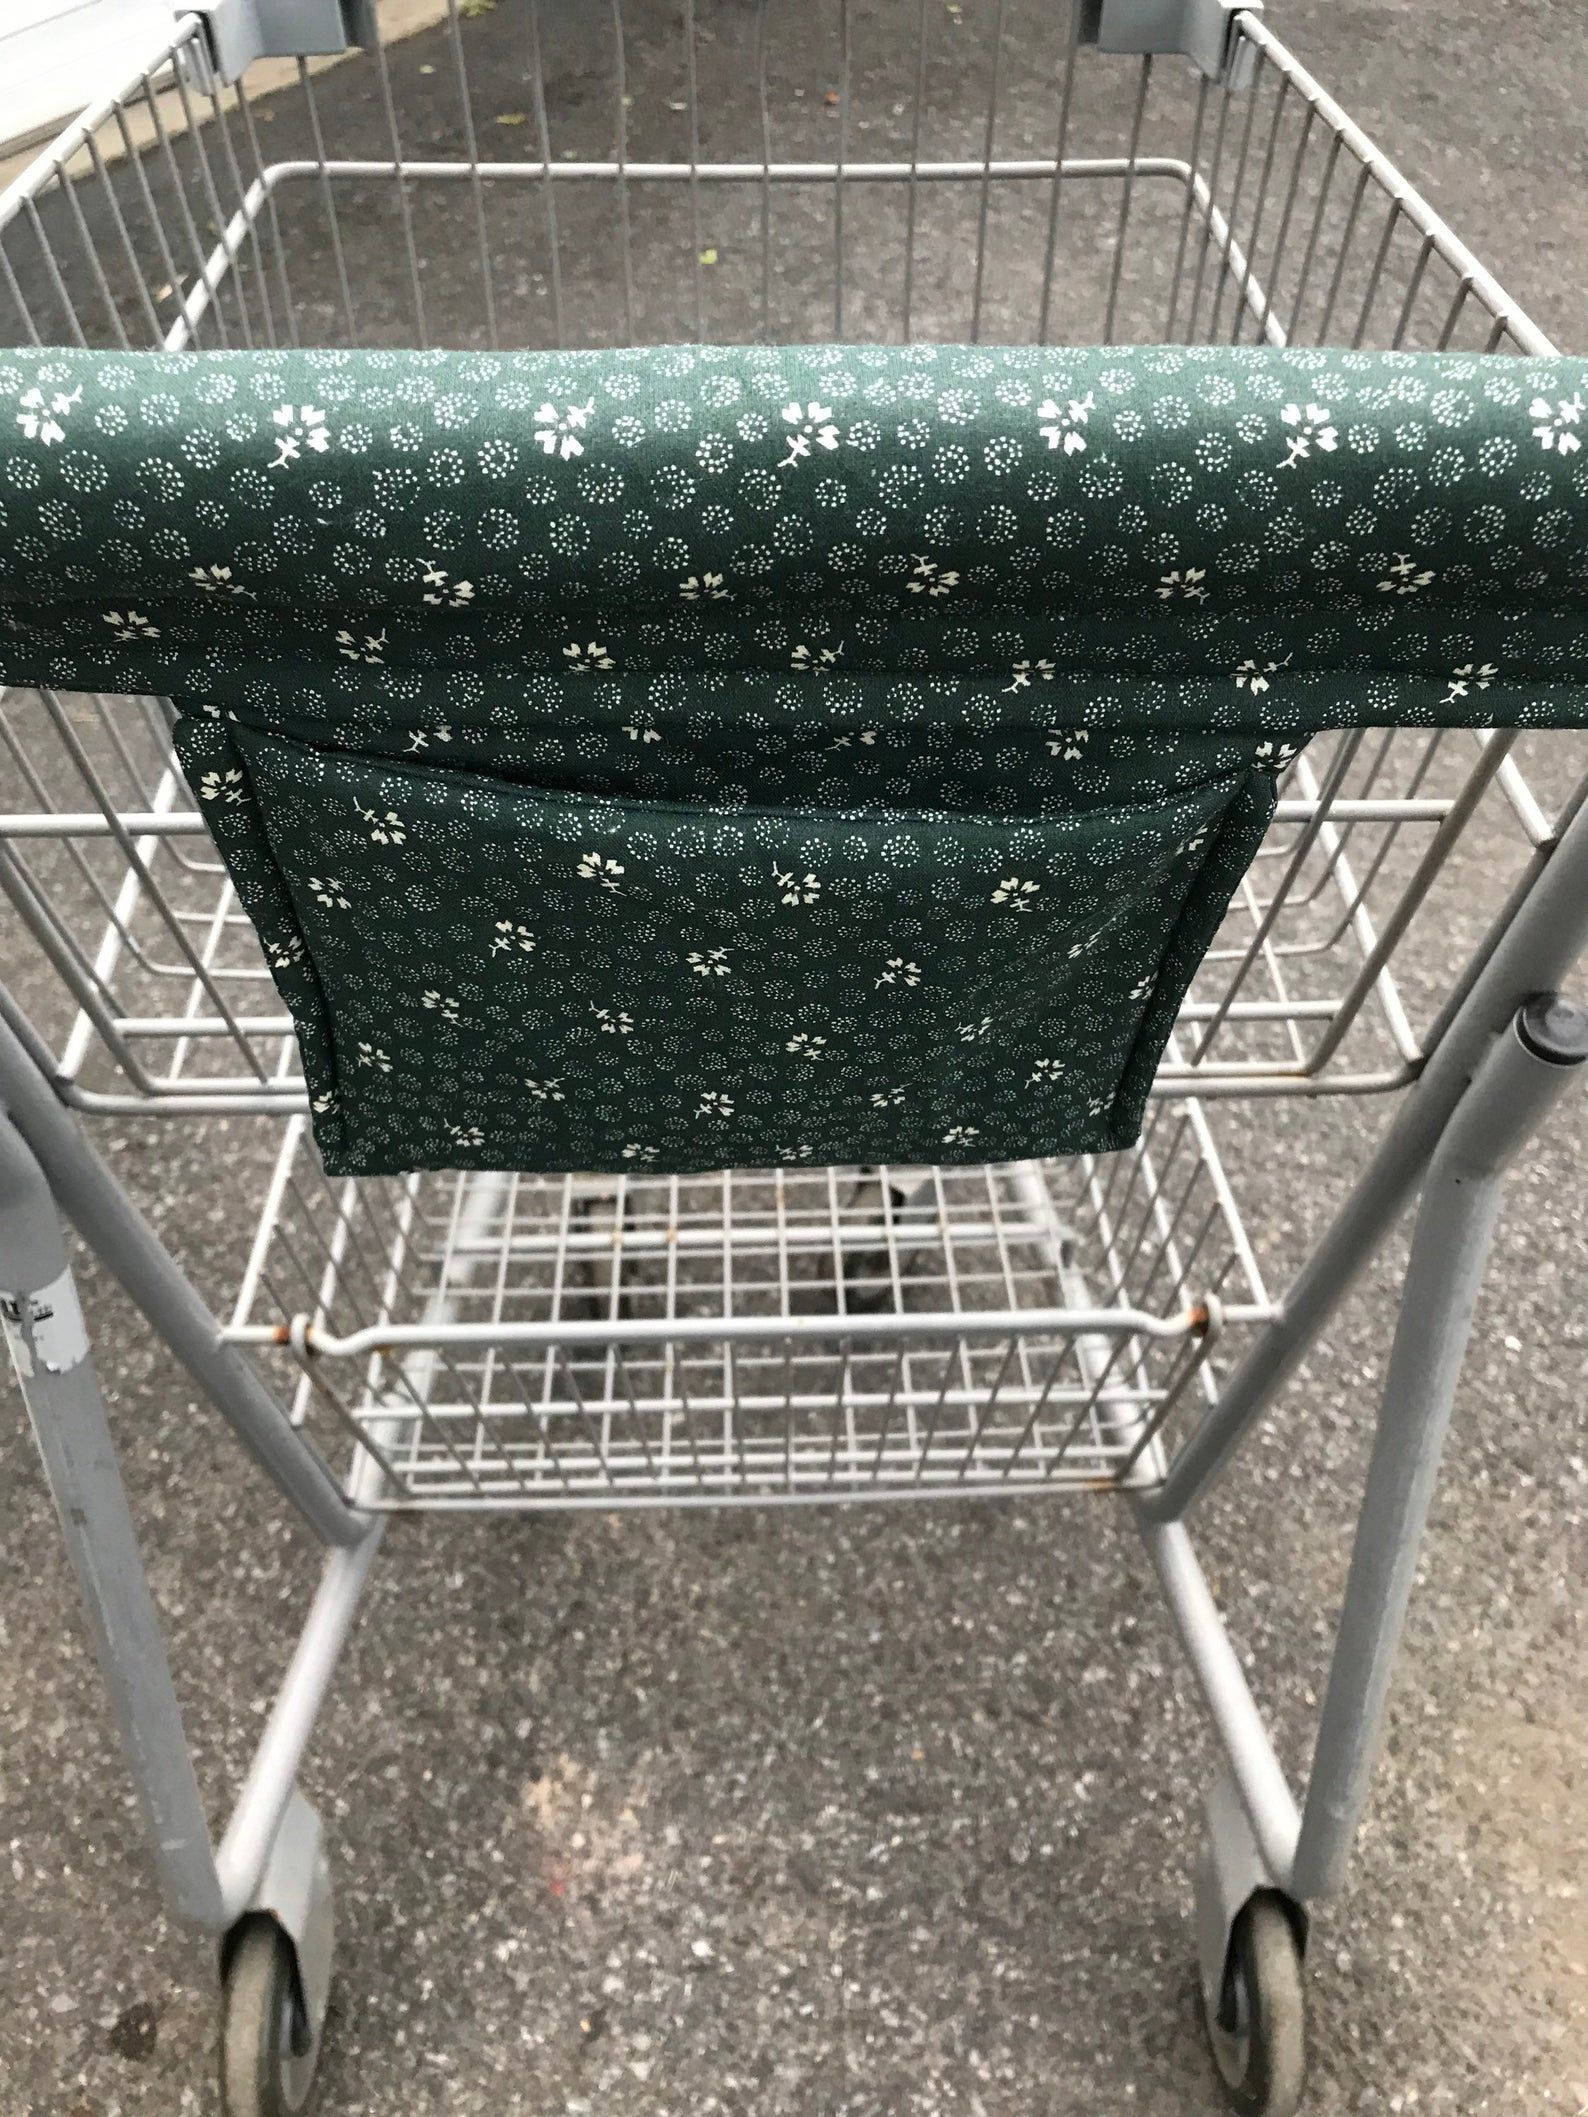 Shopping Cart Cover W Pocket Cart Handle Cover Hunter Green White Floral Cottoncart Cover Shopping Cart Covers W Pocket Handy Cart Cover In 2020 Shopping Cart Cover Diy Shopping Cart Cover Cart